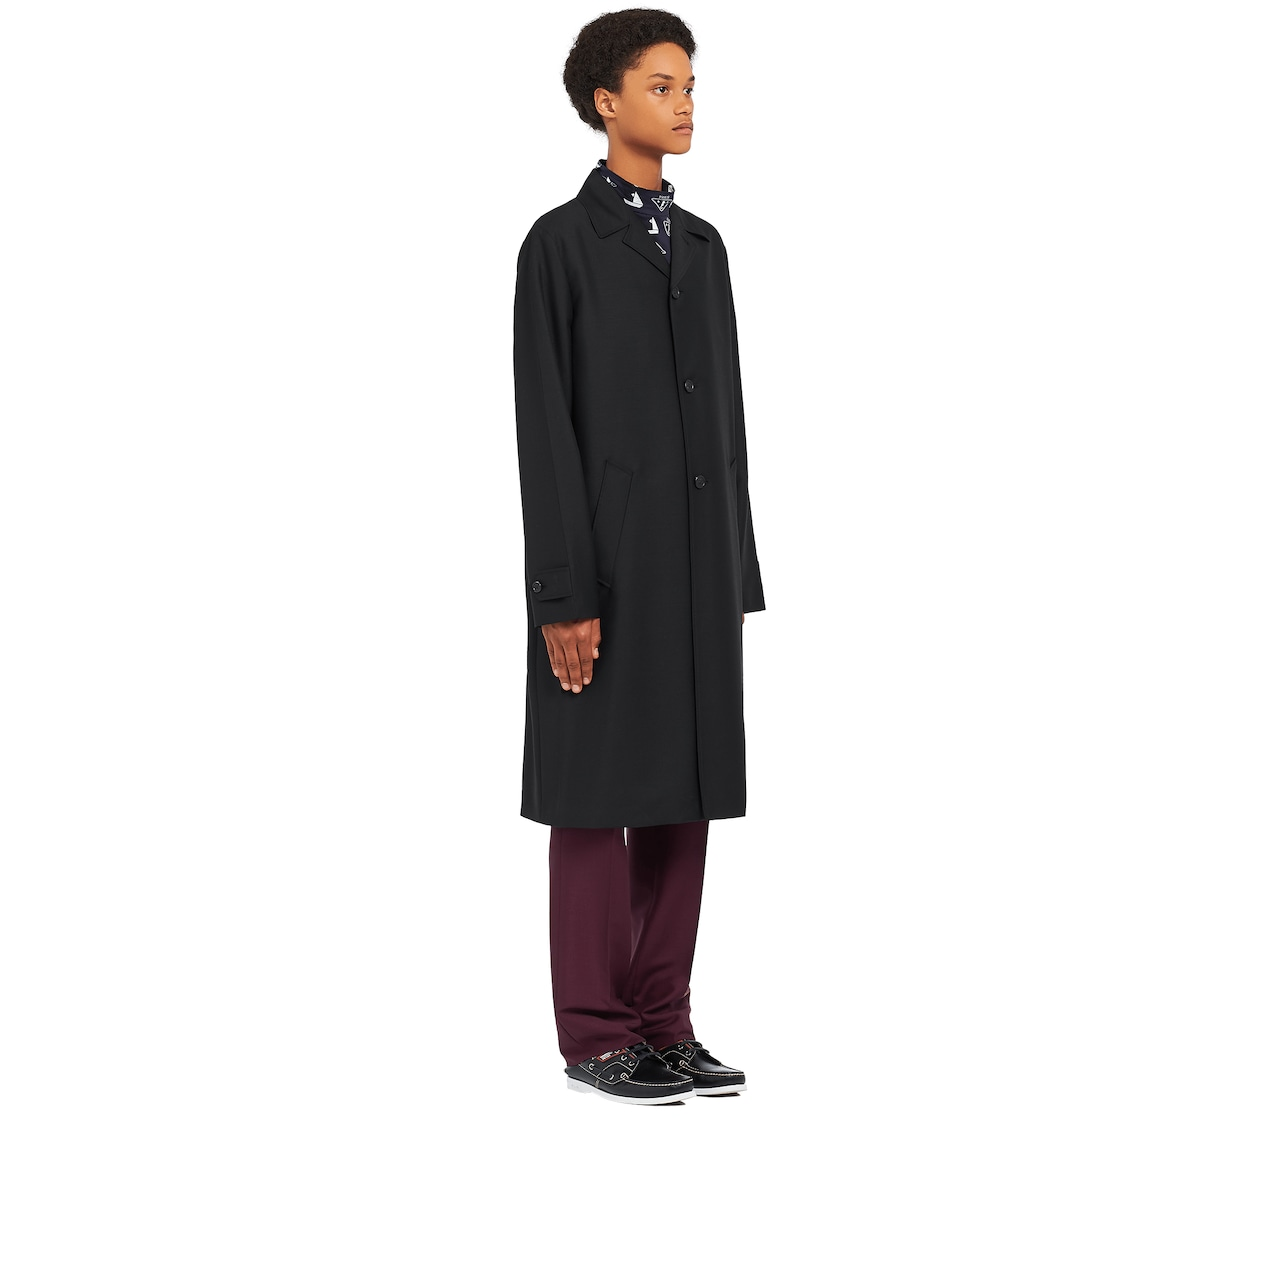 Mohair and wool coat